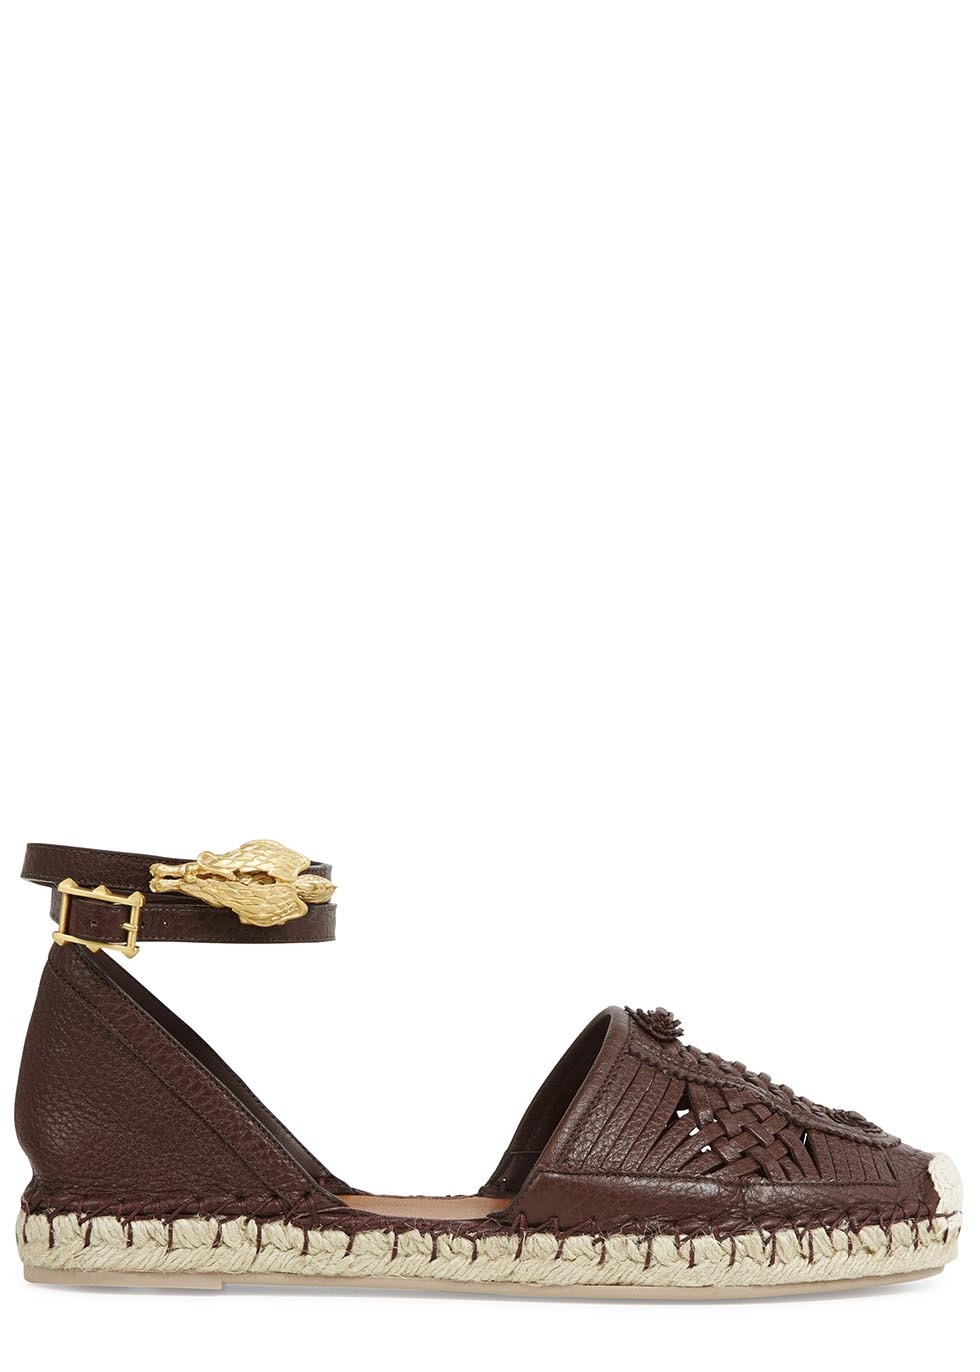 Chocolate Leather Espadrilles Size - predominant colour: chocolate brown; secondary colour: gold; occasions: casual, holiday; material: leather; heel height: flat; ankle detail: ankle strap; toe: round toe; finish: plain; pattern: plain; embellishment: chain/metal; style: espadrilles; season: s/s 2014